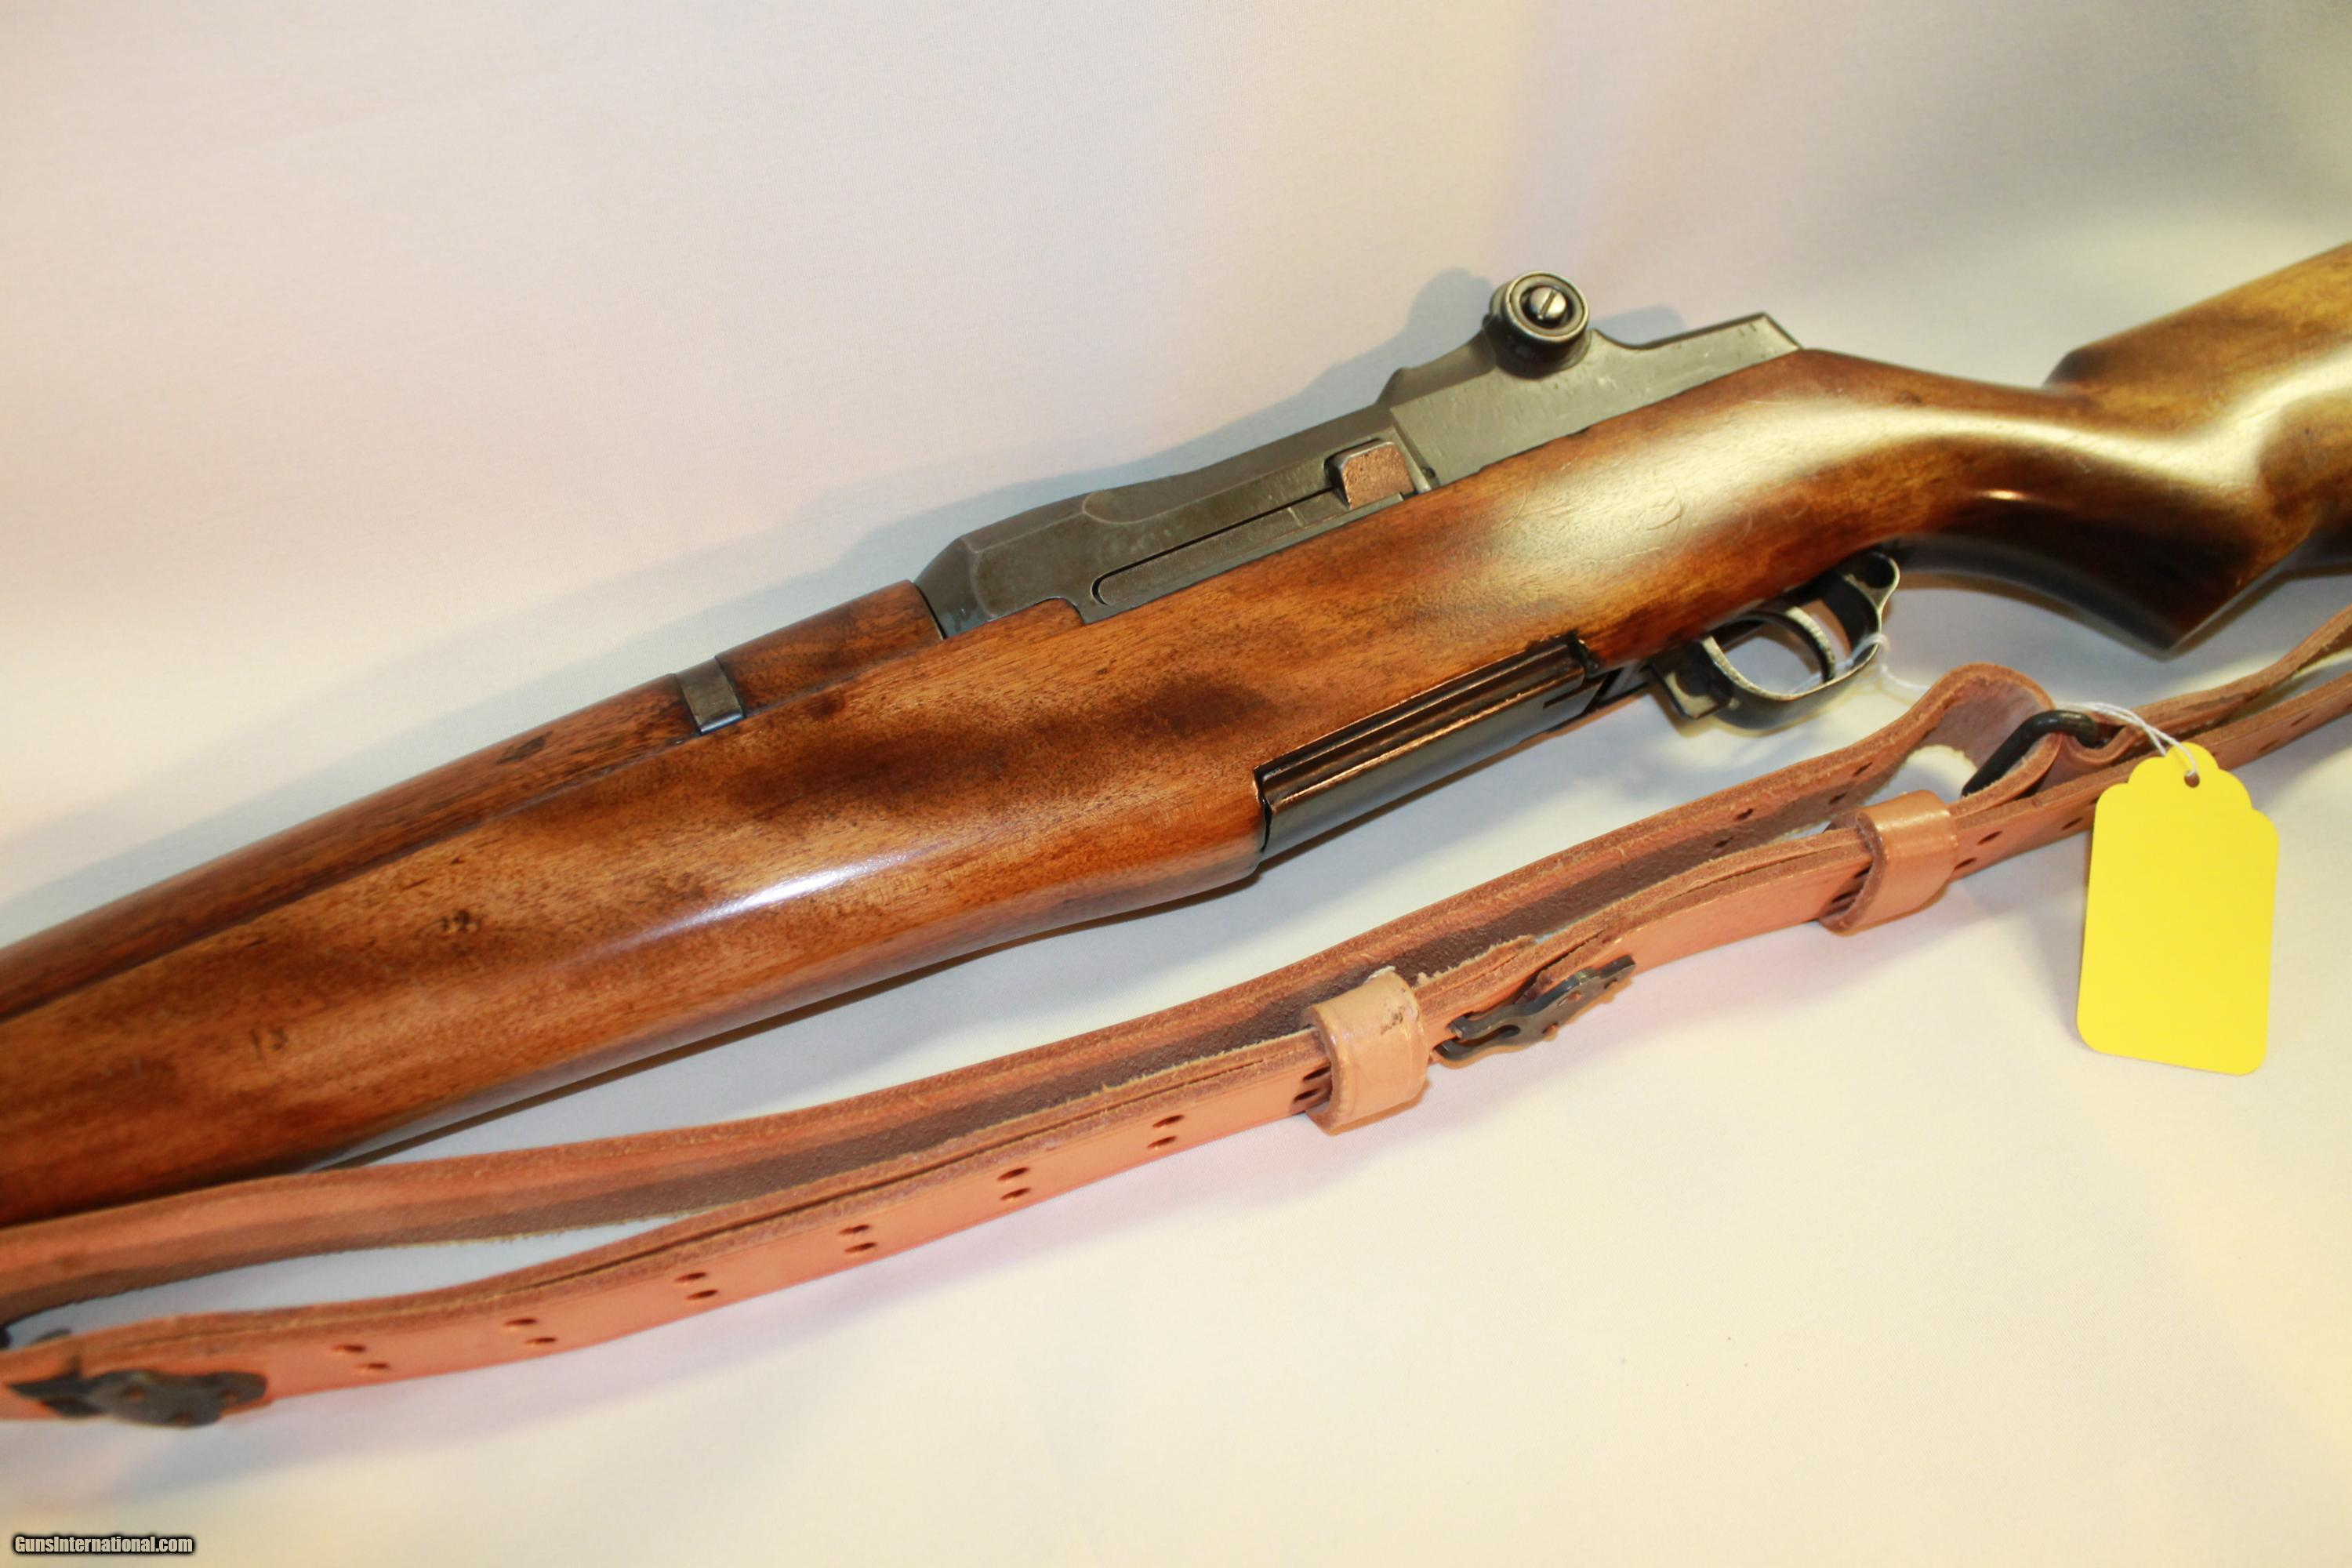 m1 garand rifle The m1 carbine (formally the united states carbine, caliber 30, m1) is a lightweight, easy to use 30 caliber (762 mm) semi-automatic carbine that was a standard firearm for the us military during world war ii, the korean war and well into the vietnam war.